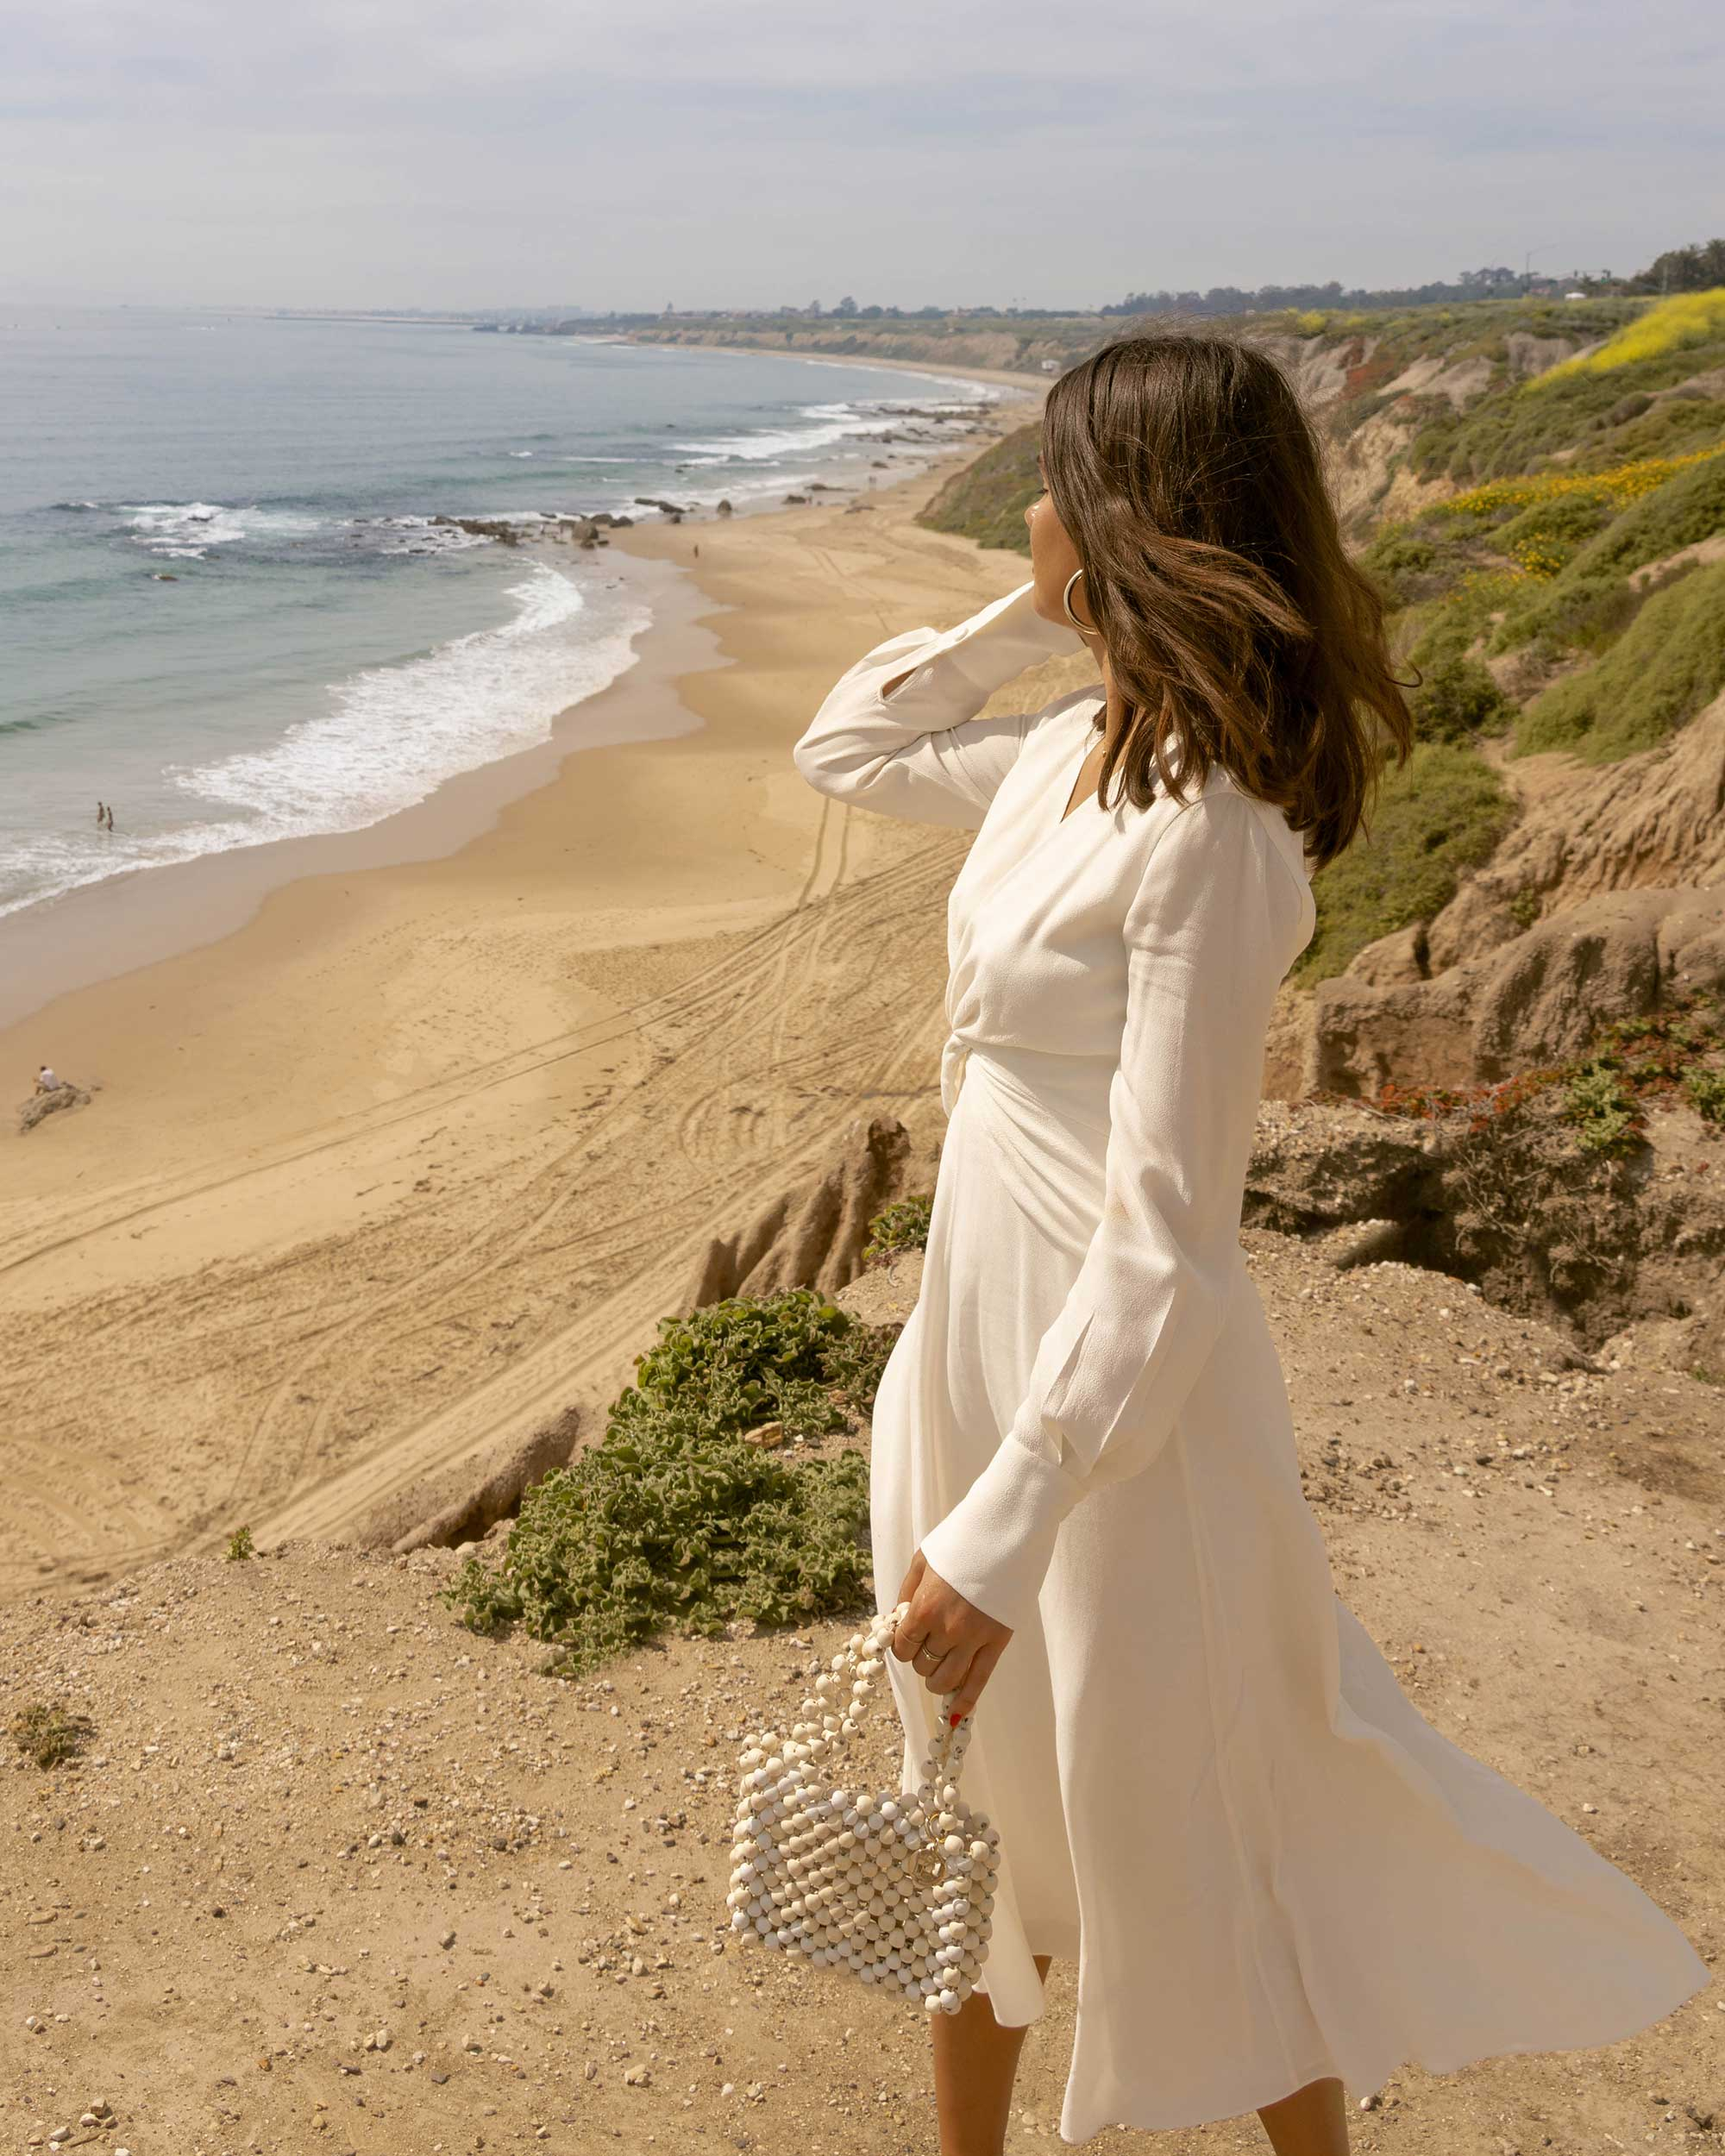 White Dress in Laguna - Equipment Faun crepe midi dress in white with a flatteringly knotted front and plunging neckline for the perfect spring outfit